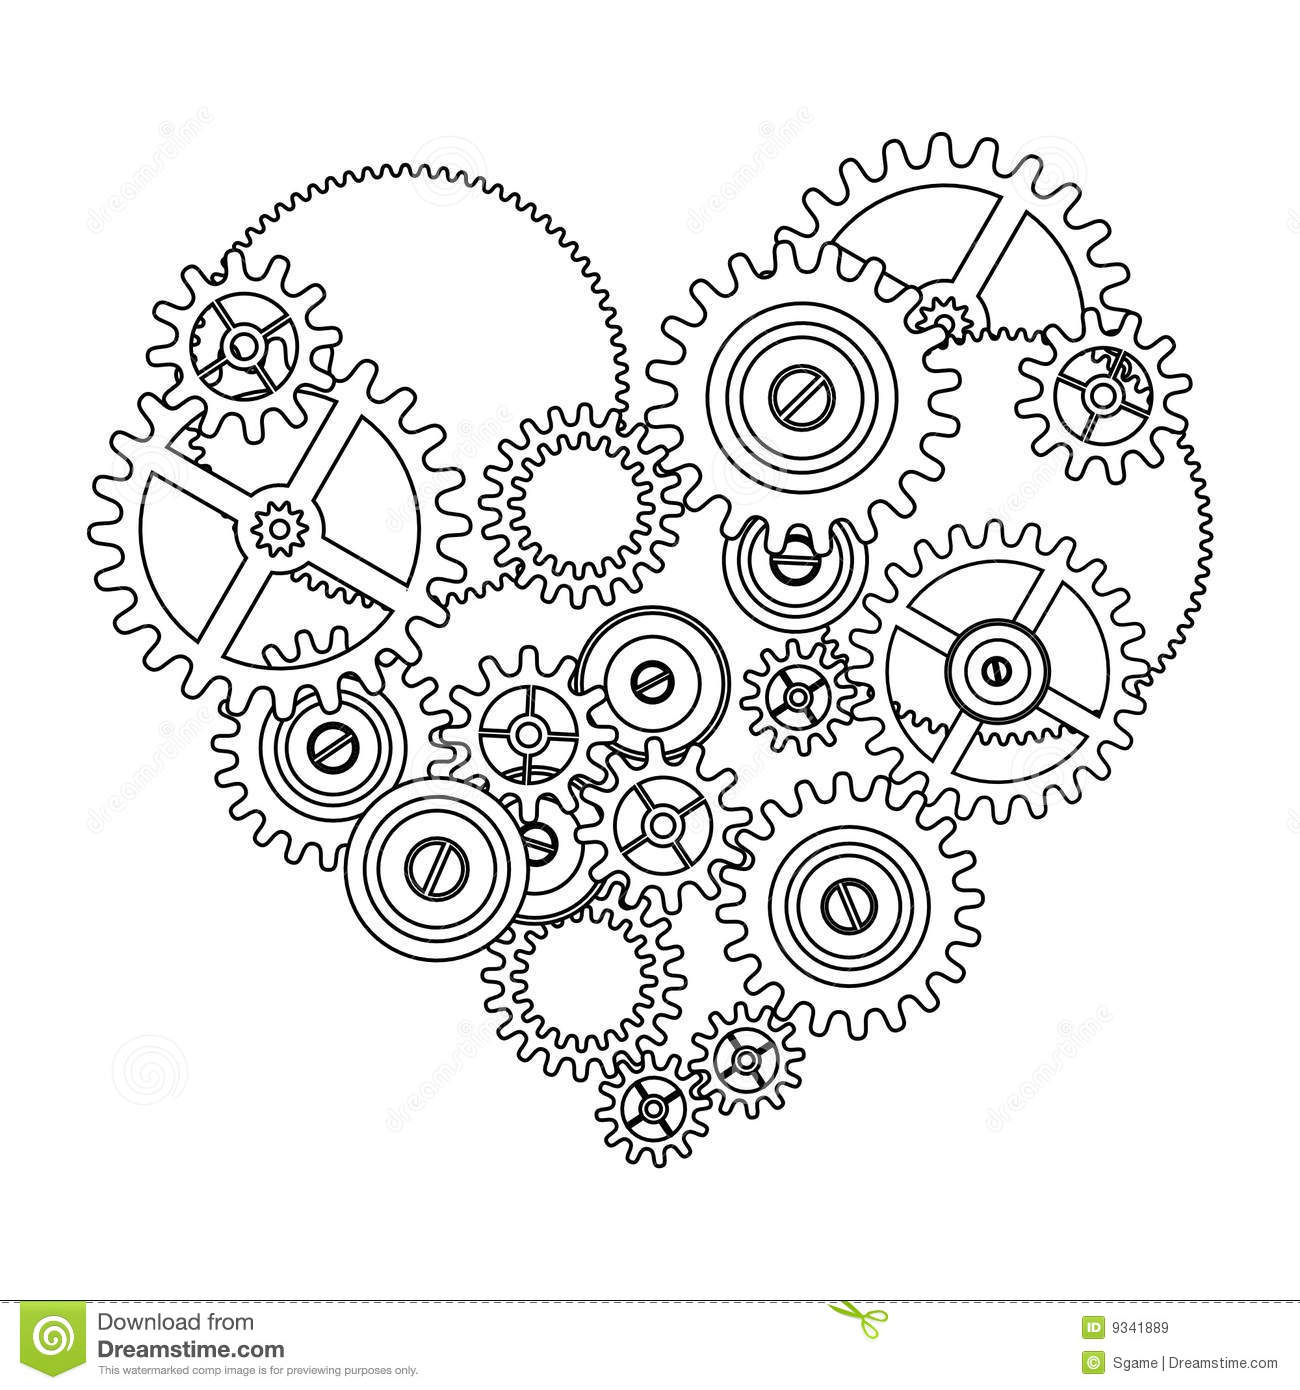 lesbian wedding coloring pages | Gear Love Heart Royalty Free Stock Images - Image: 9341889